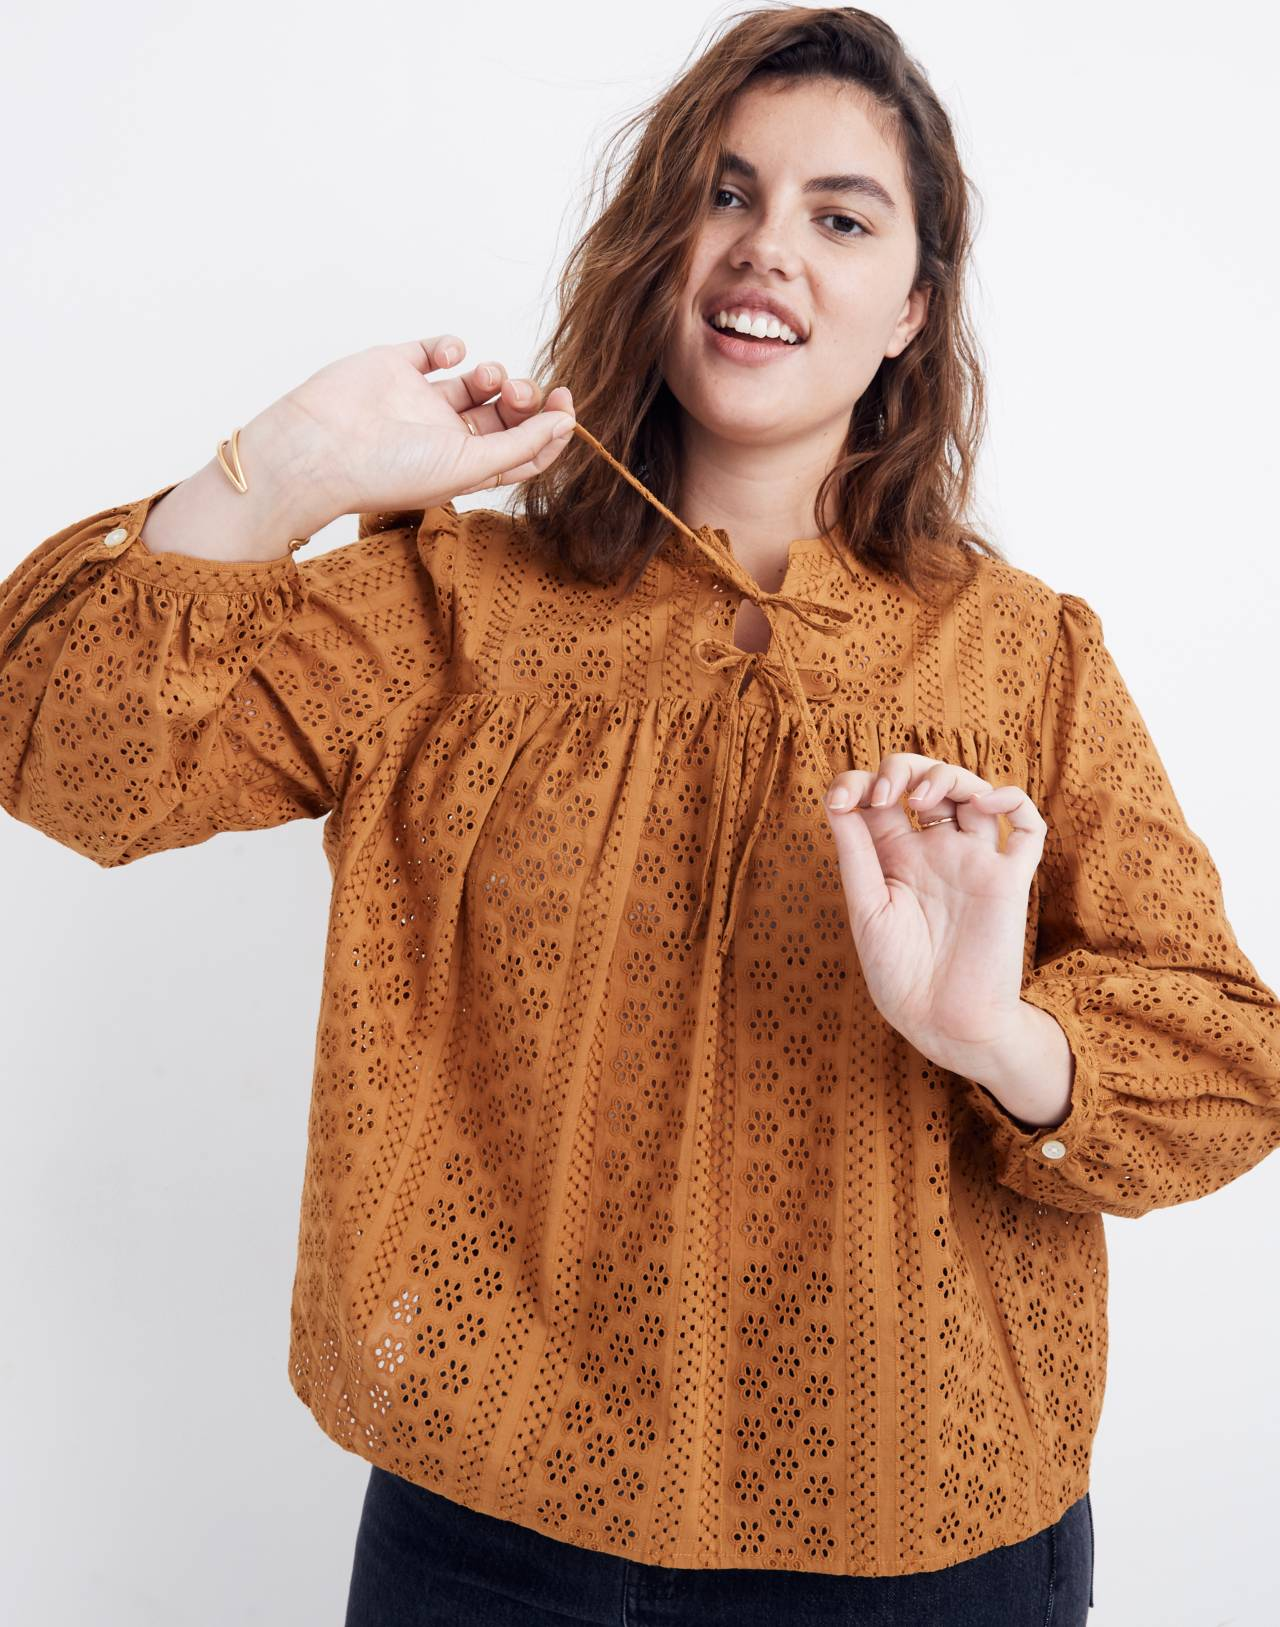 Eyelet Double-Tie Peasant Top in carrot cake image 1